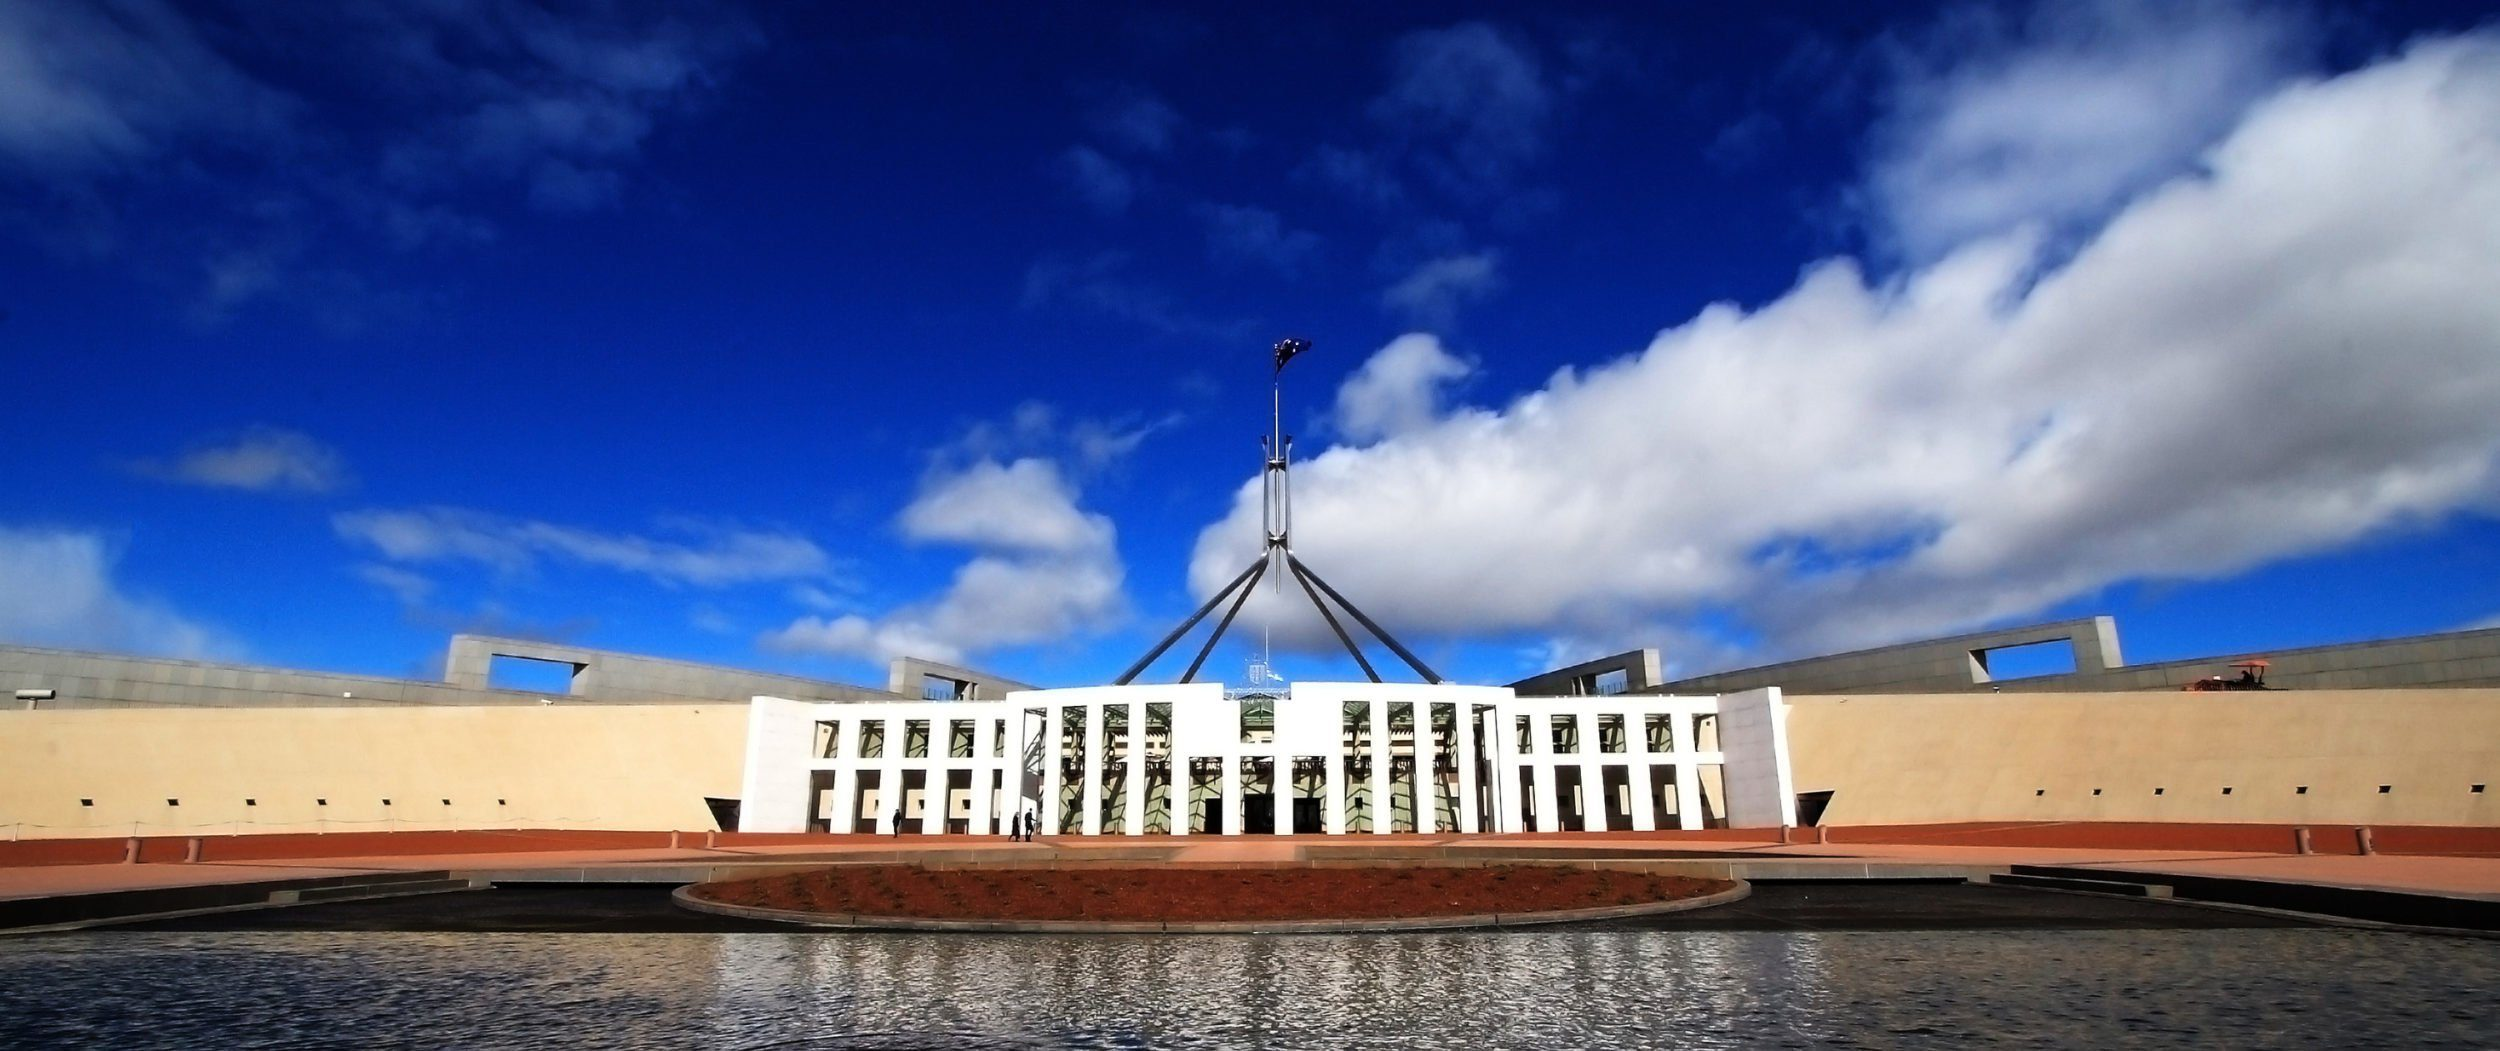 Parliment House in Canberra, Australia